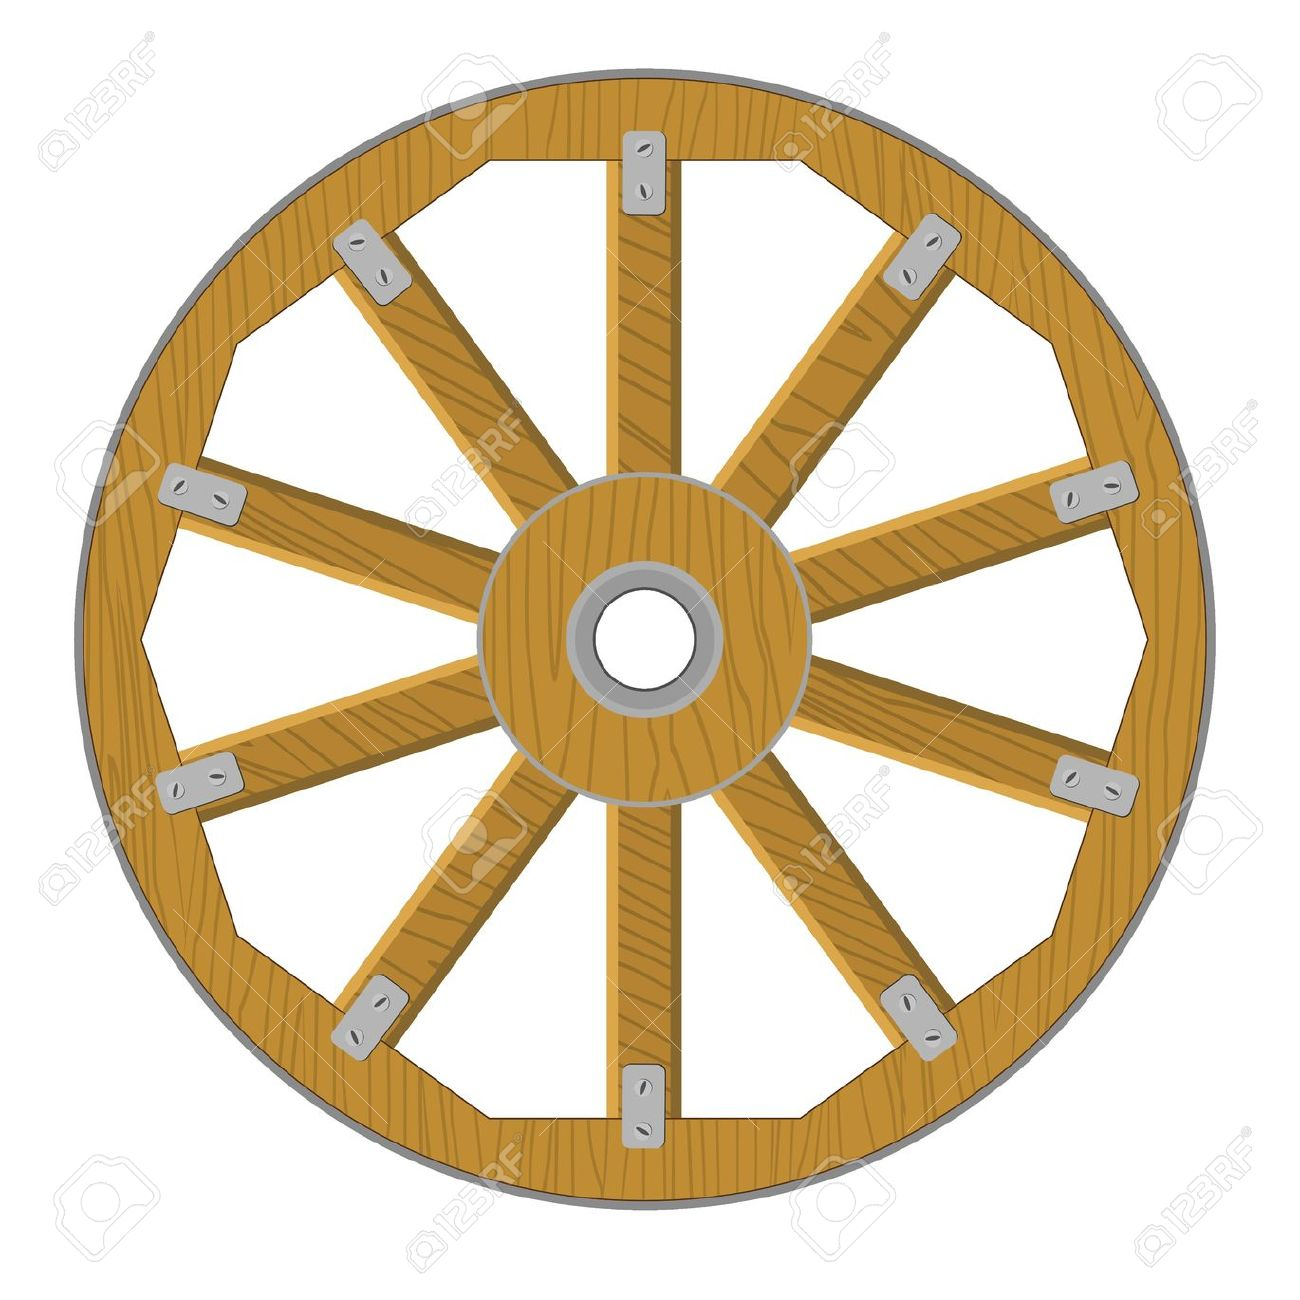 Vector Image Of A Wooden Wheel Royalty Free Cliparts, Vectors, And.